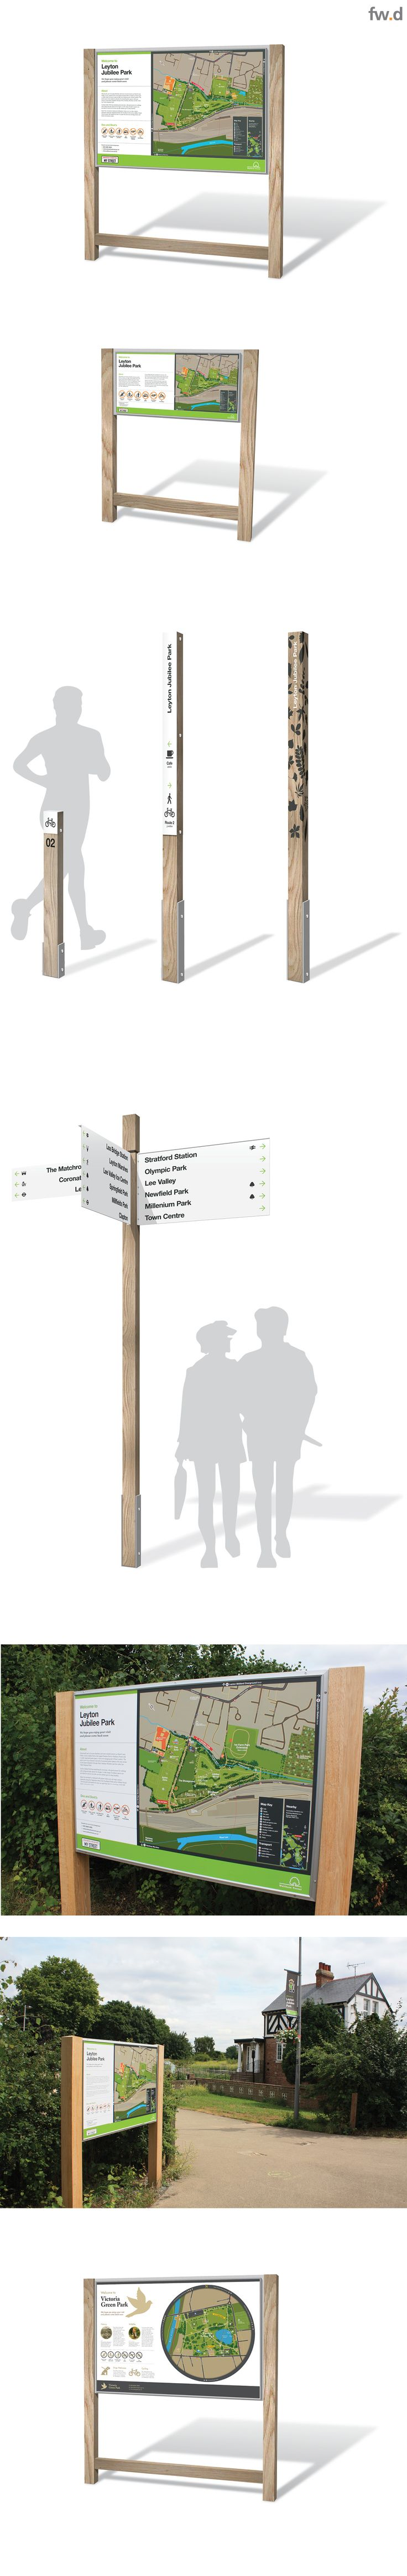 Our new family member brings all the benefits of our 'best practice' wayfinding approach with a new palette of materials and finishes introduced to complement the environment of green spaces.